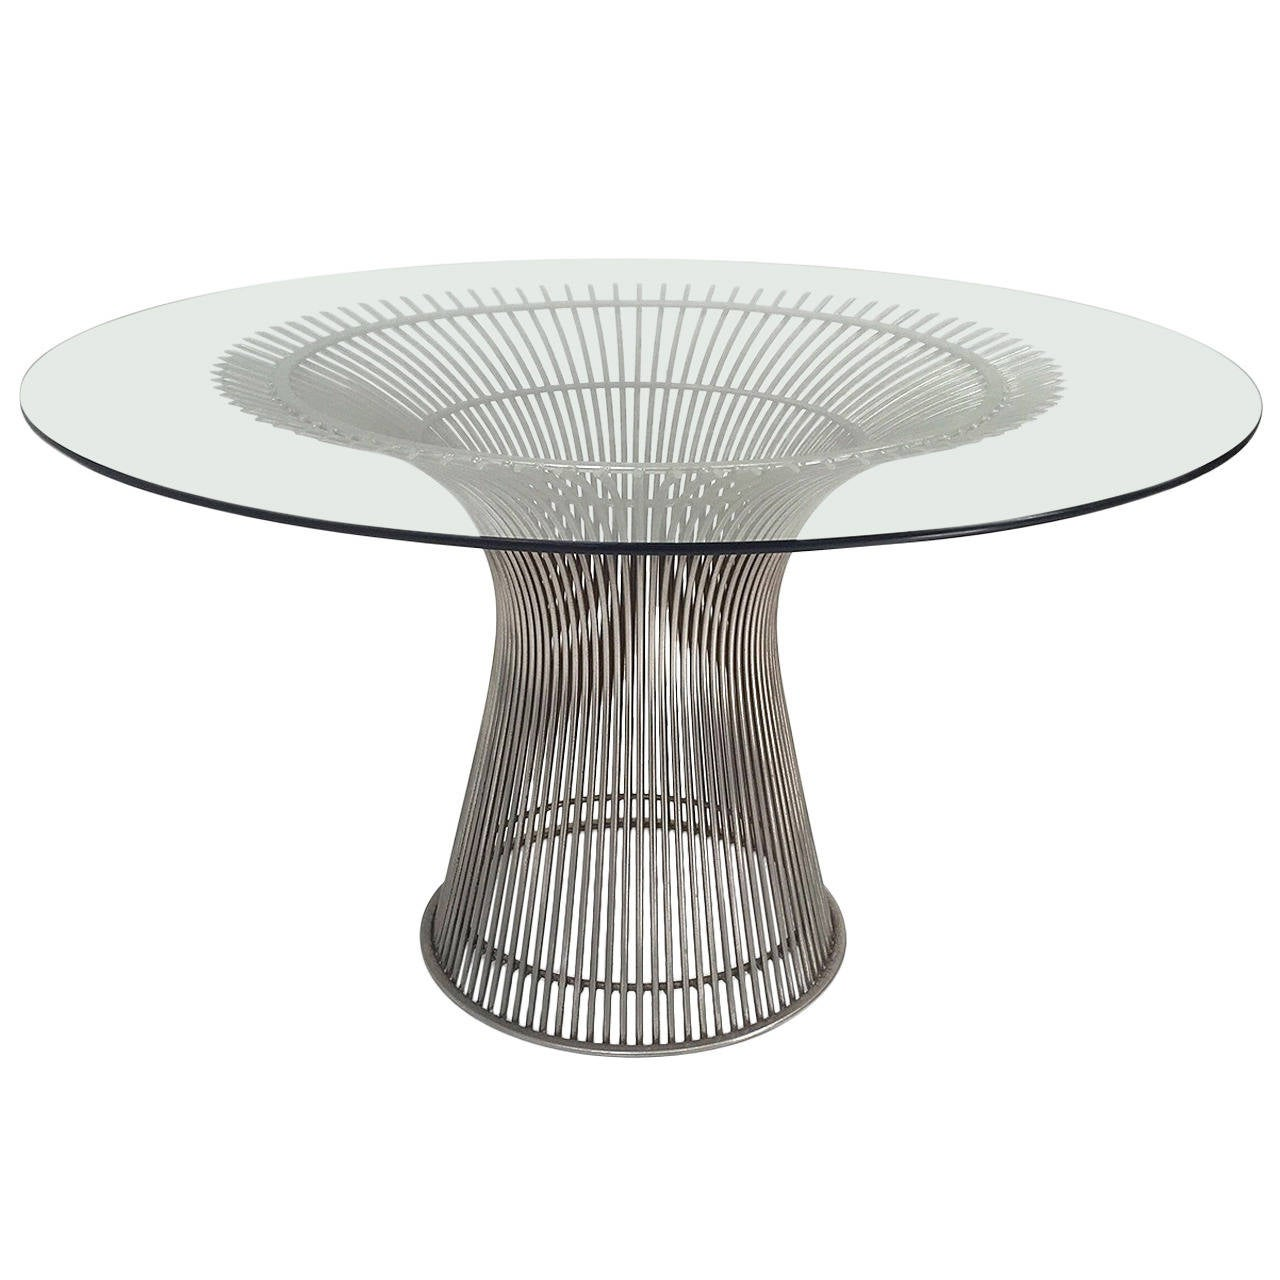 Vintage Knoll Warren Platner Glass Top Dining Table at 1stdibs : 2676122l from www.1stdibs.com size 1280 x 1280 jpeg 109kB